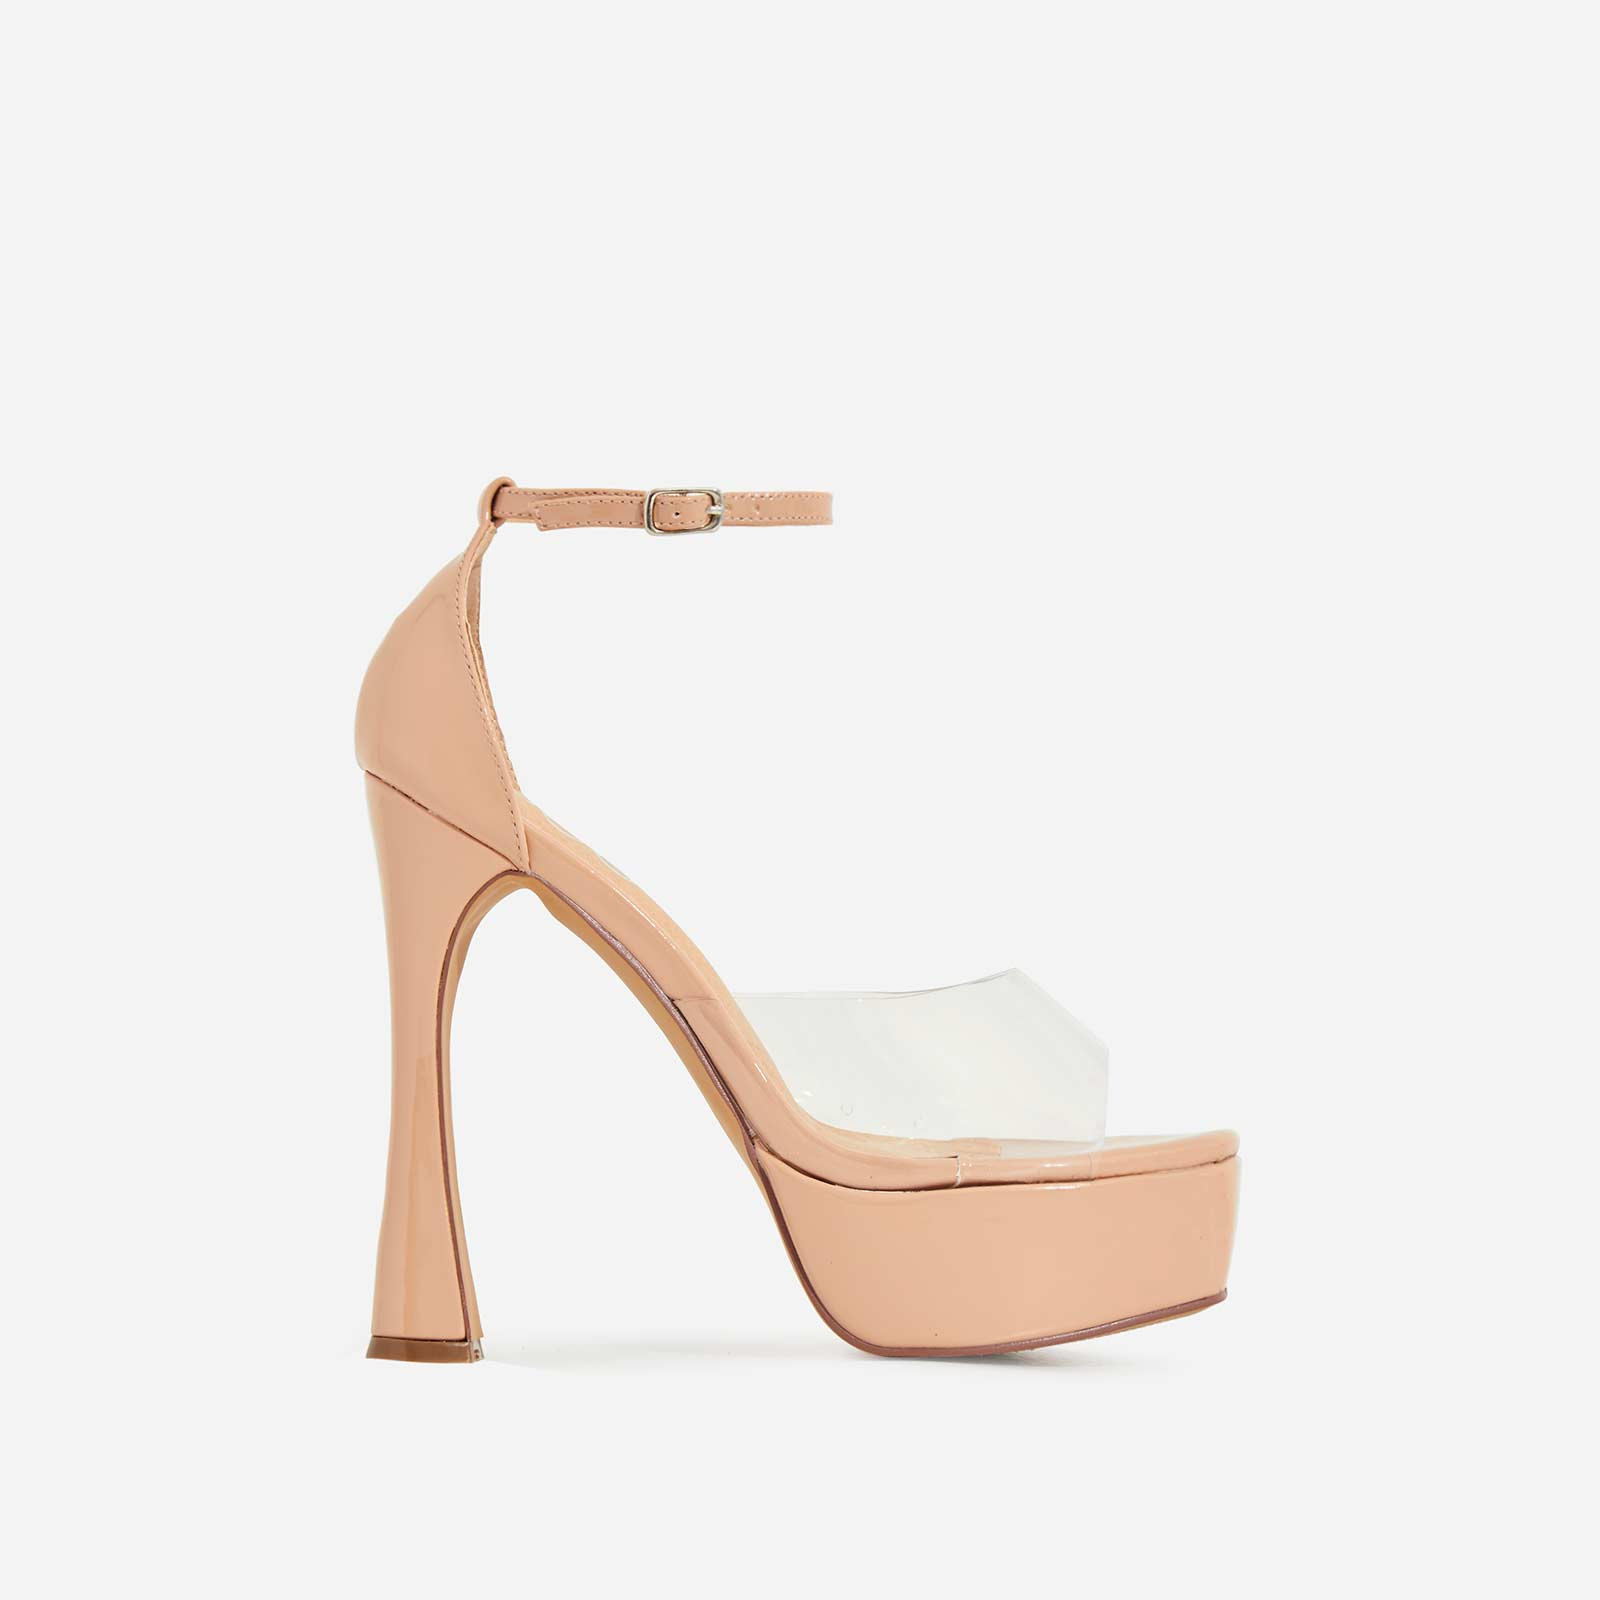 Kimmie Perspex Square Toe Platform Curved Heel In Nude Patent